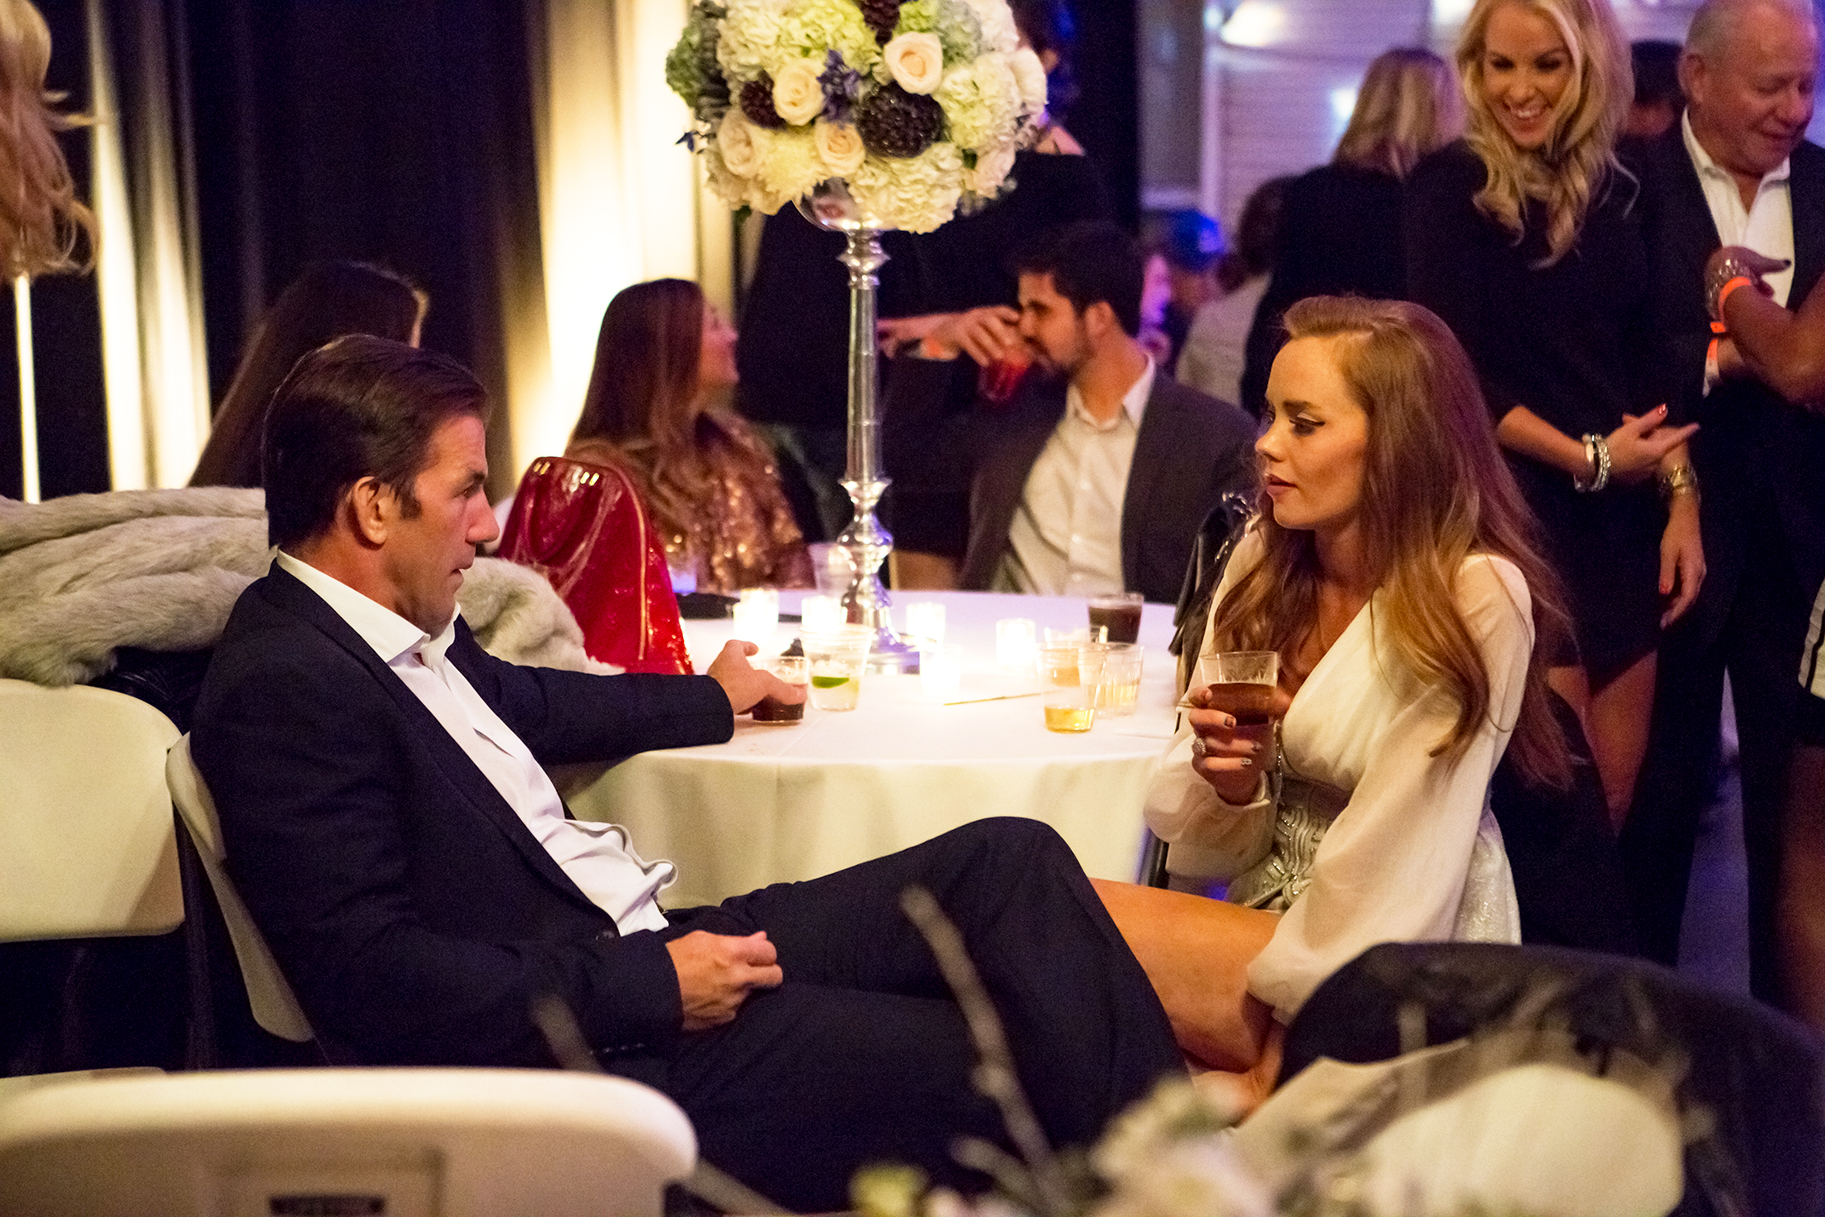 Bryan Singer Productions >> Southern Charm: Season Three Premieres on Bravo in April - canceled TV shows - TV Series Finale